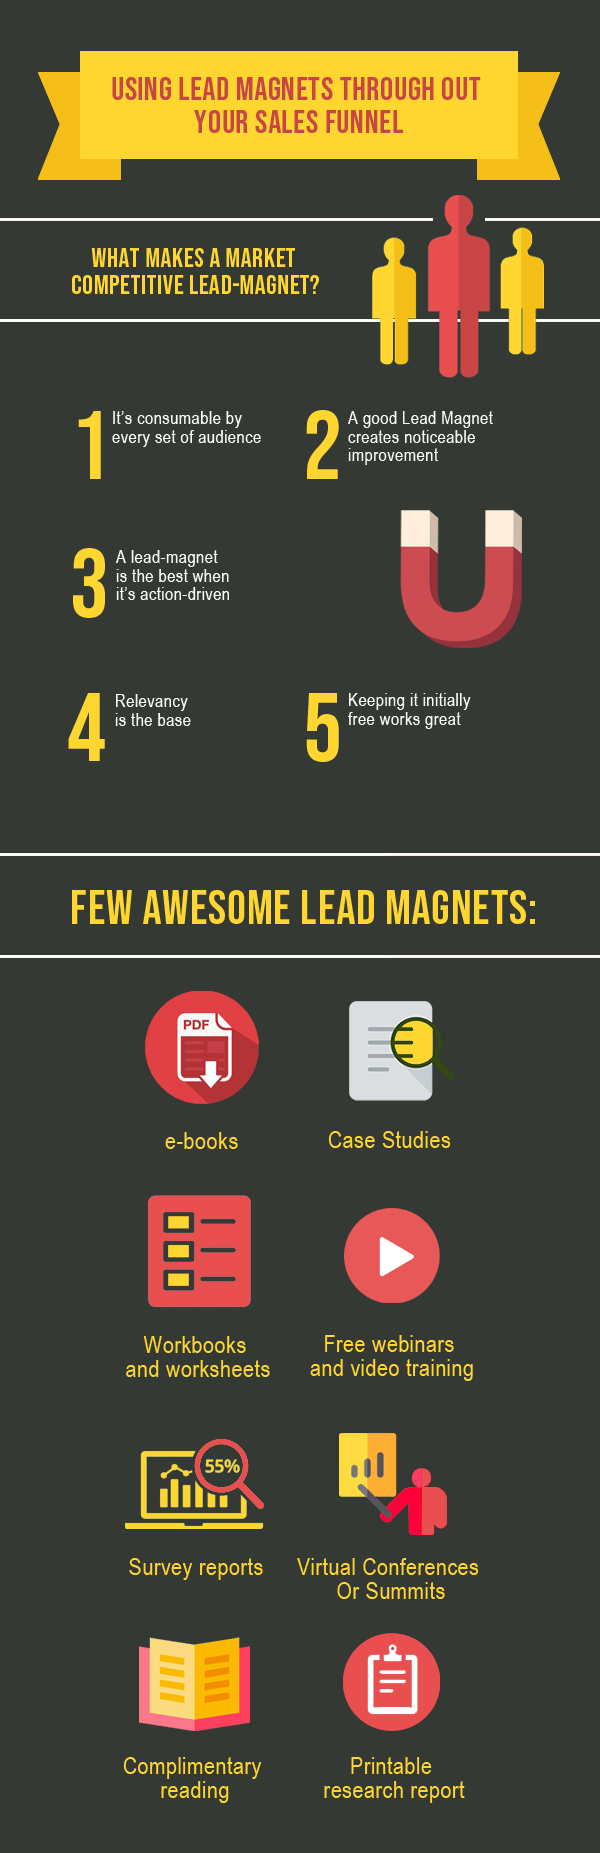 Leads explained, the infographic way